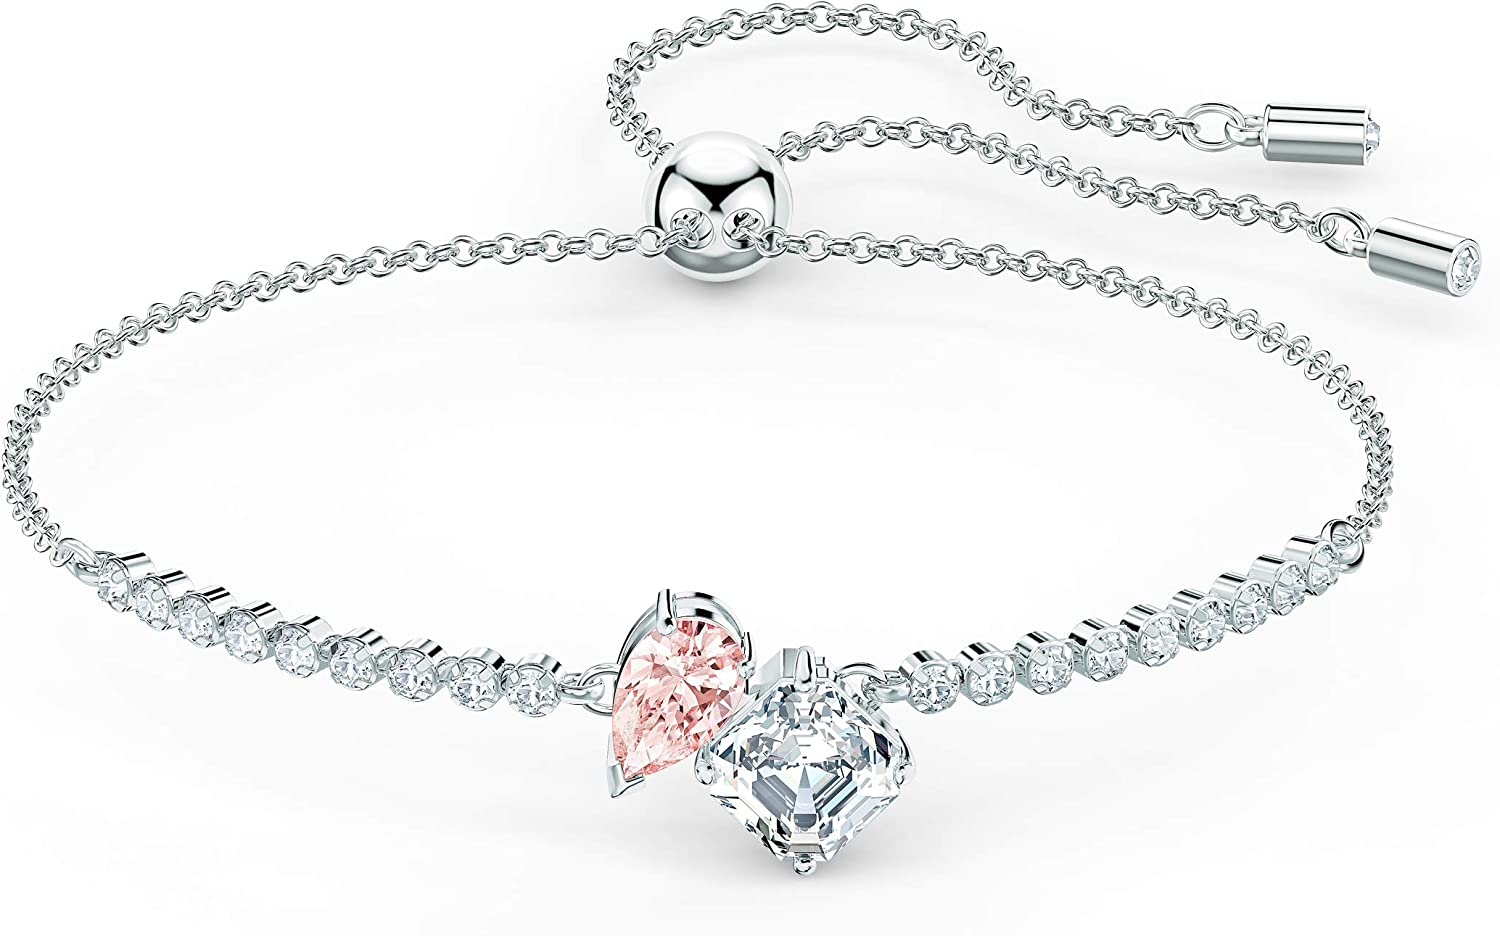 Jewels Obsession Saying Necklace Rhodium-plated 925 Silver Think Thin Saying Pendant with 18 Necklace